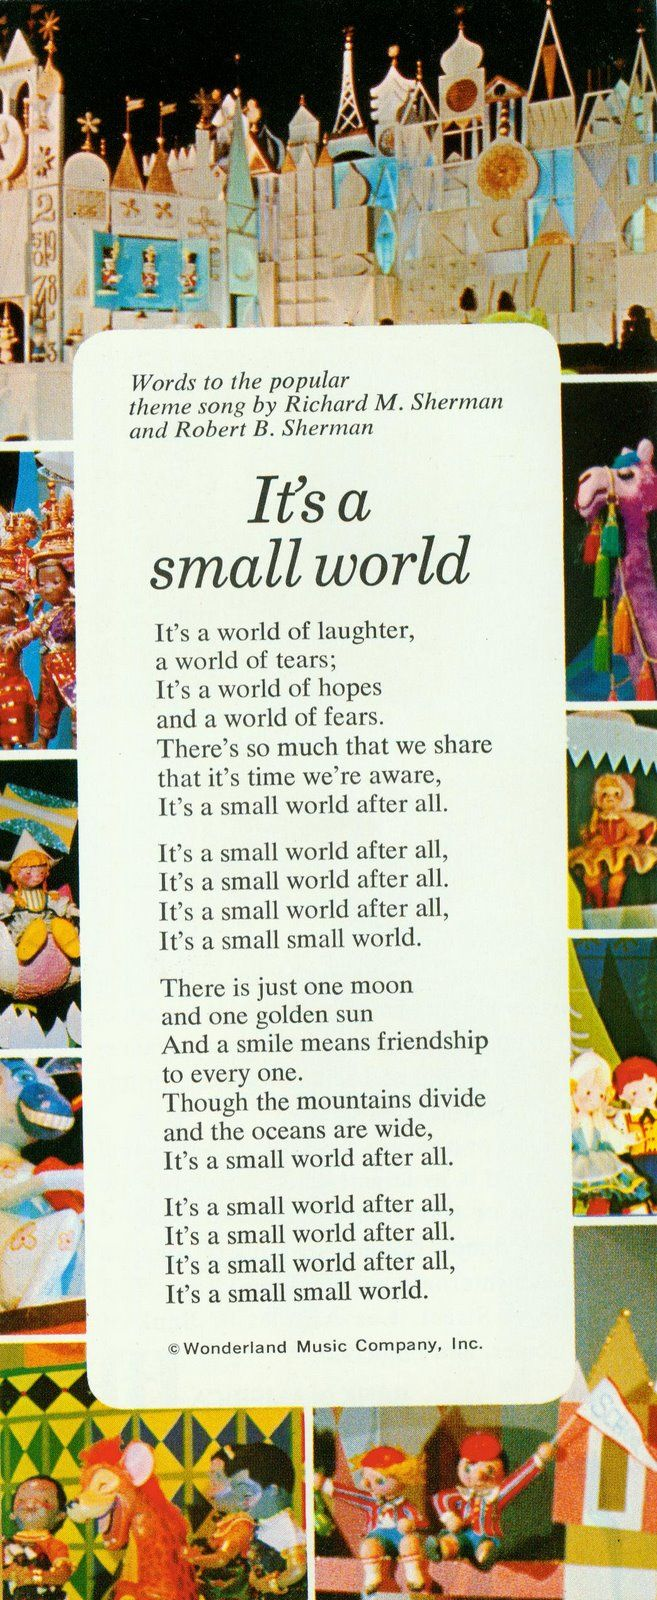 It's a small world lyrics Warning read at your own risk. To late... now it will be stuck in your head for hours. Don't say i didn't warn you. Ahhaha